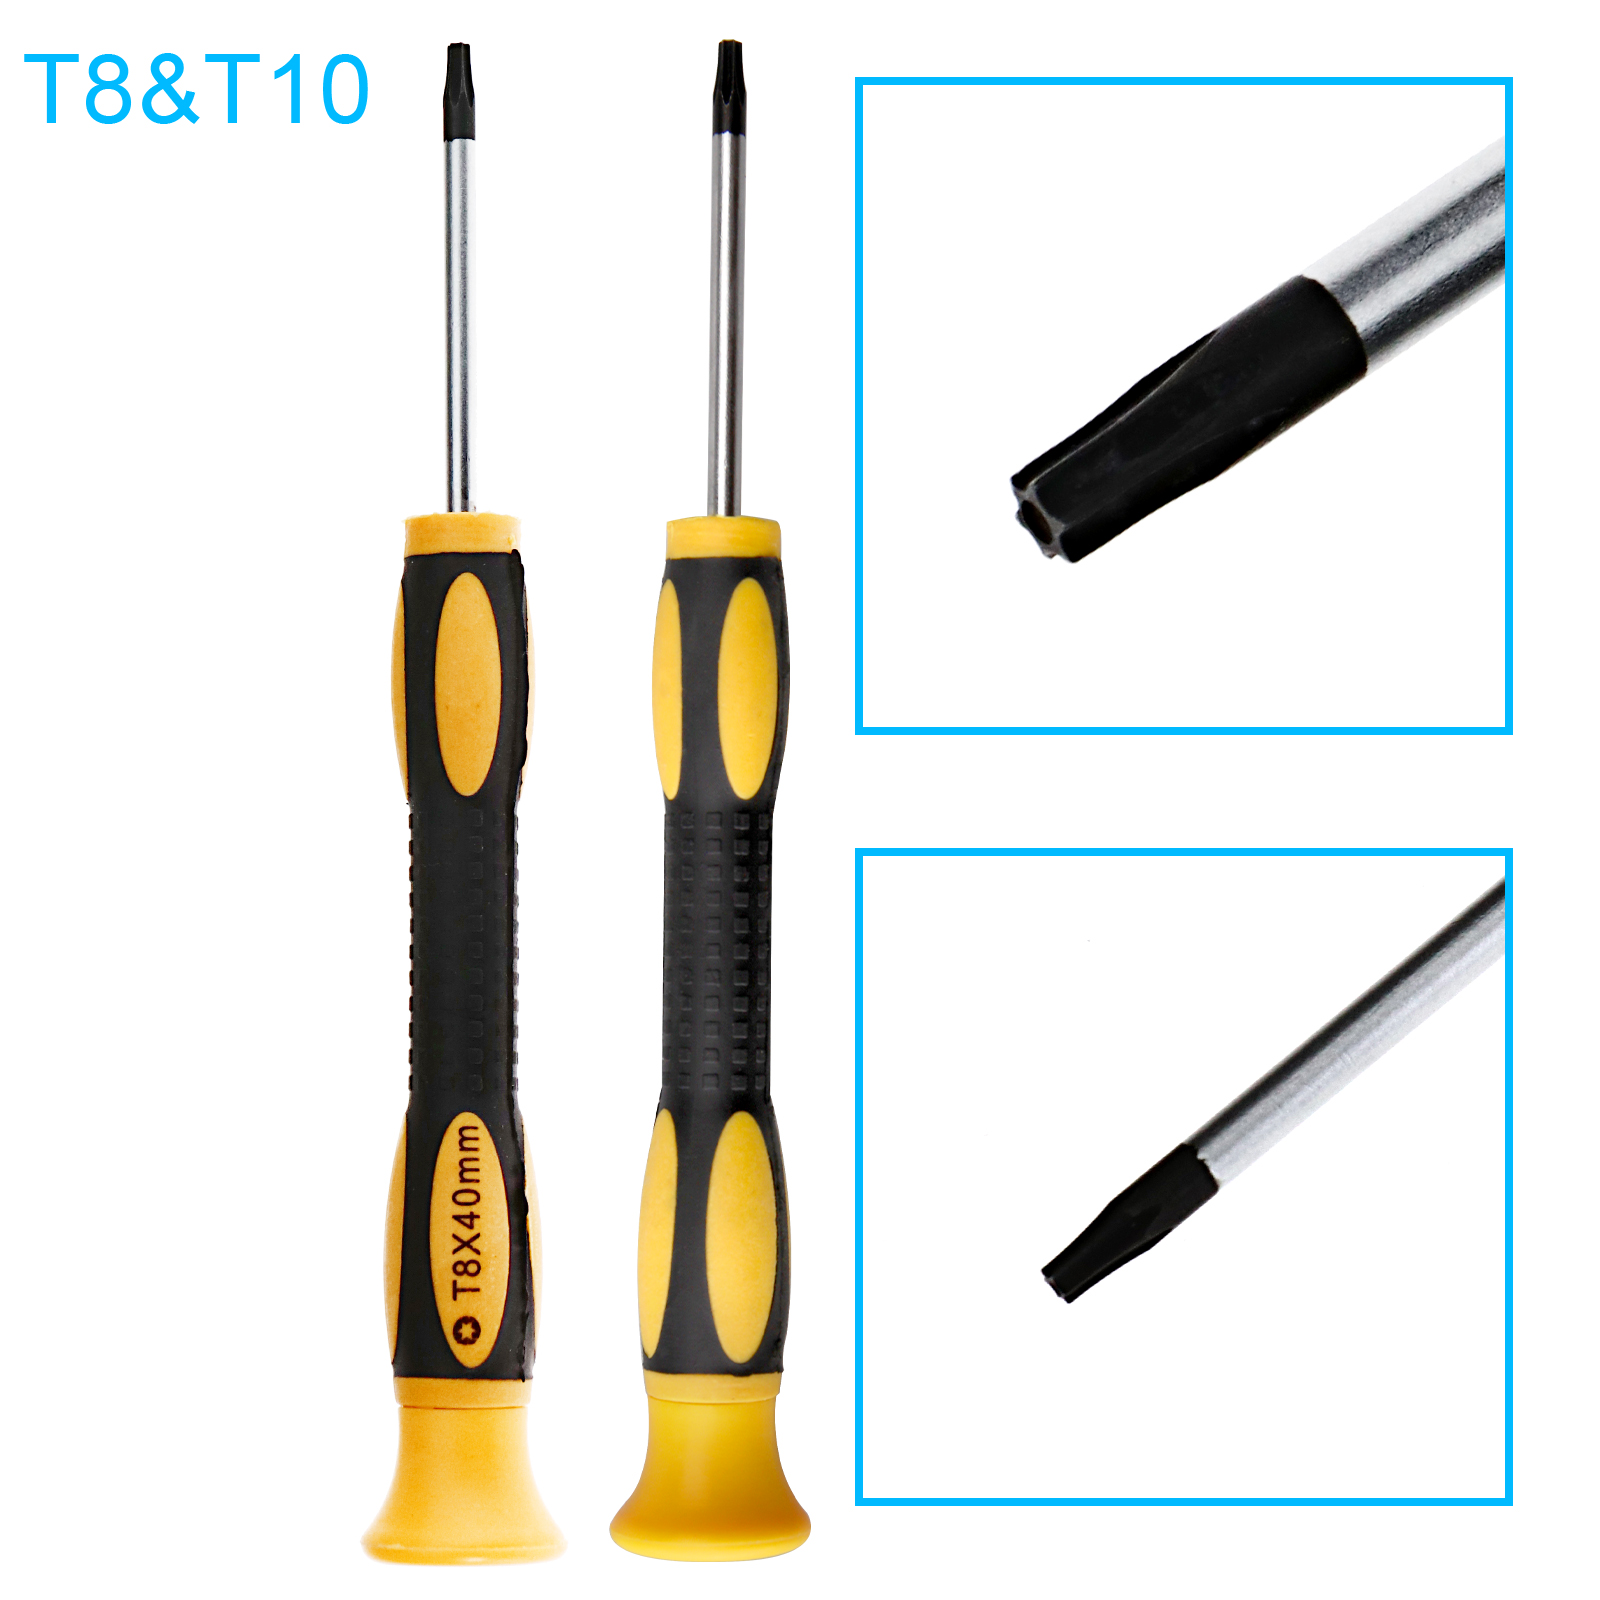 10cm D2D Torx T10 T8 Security Screwdriver for PS3 Xbox 360 Controller Playstation 4